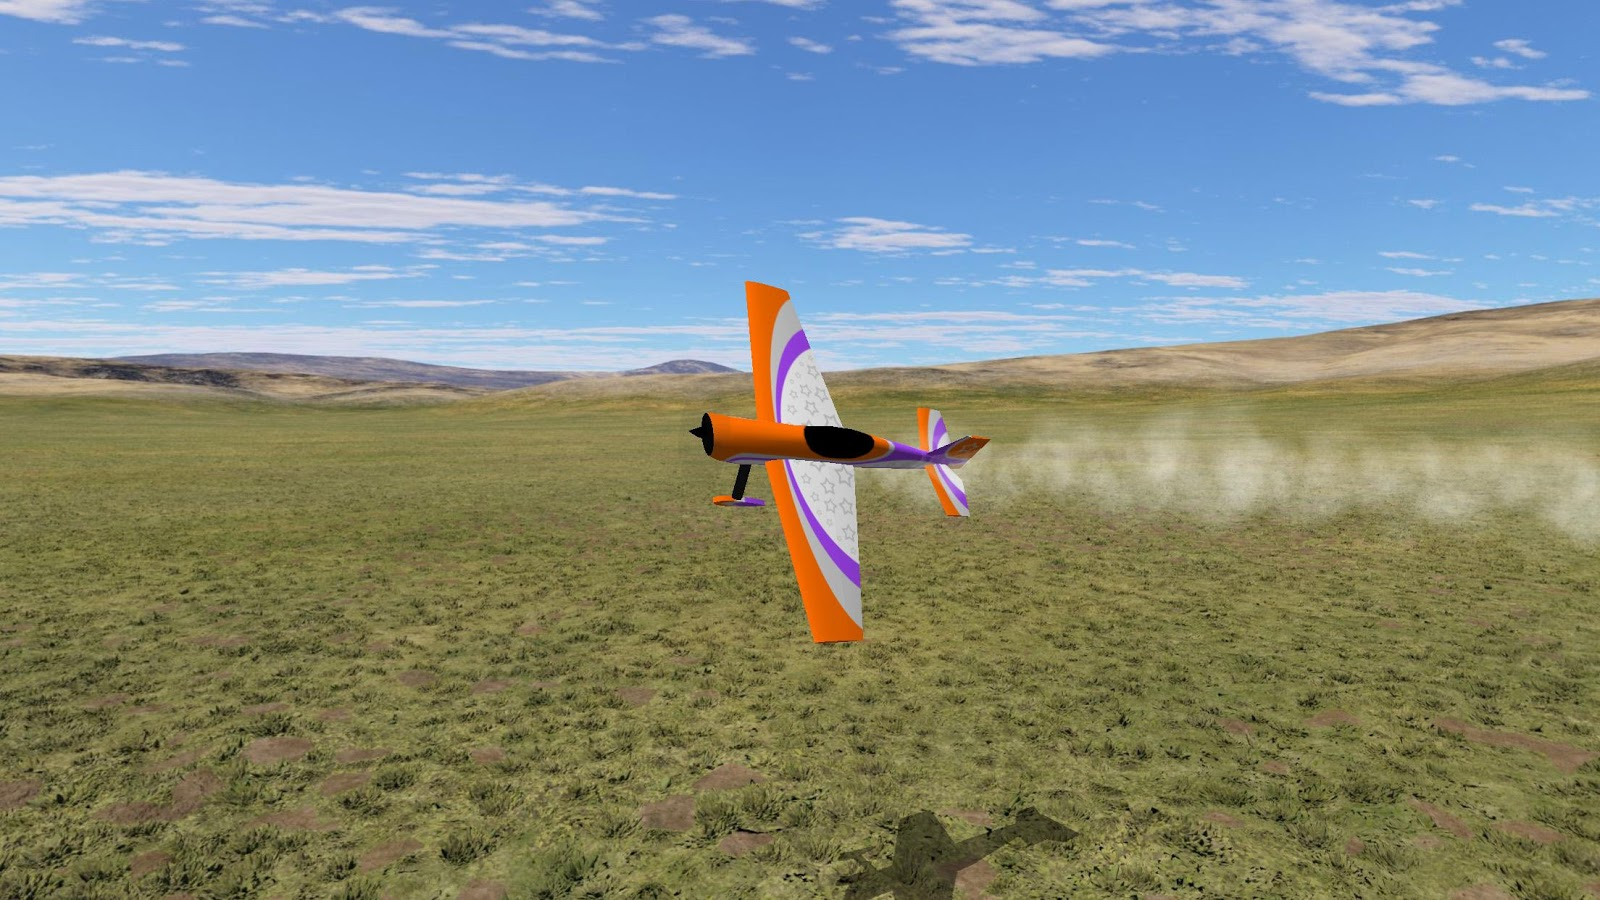 PicaSim: Flight simulator Screenshot 14